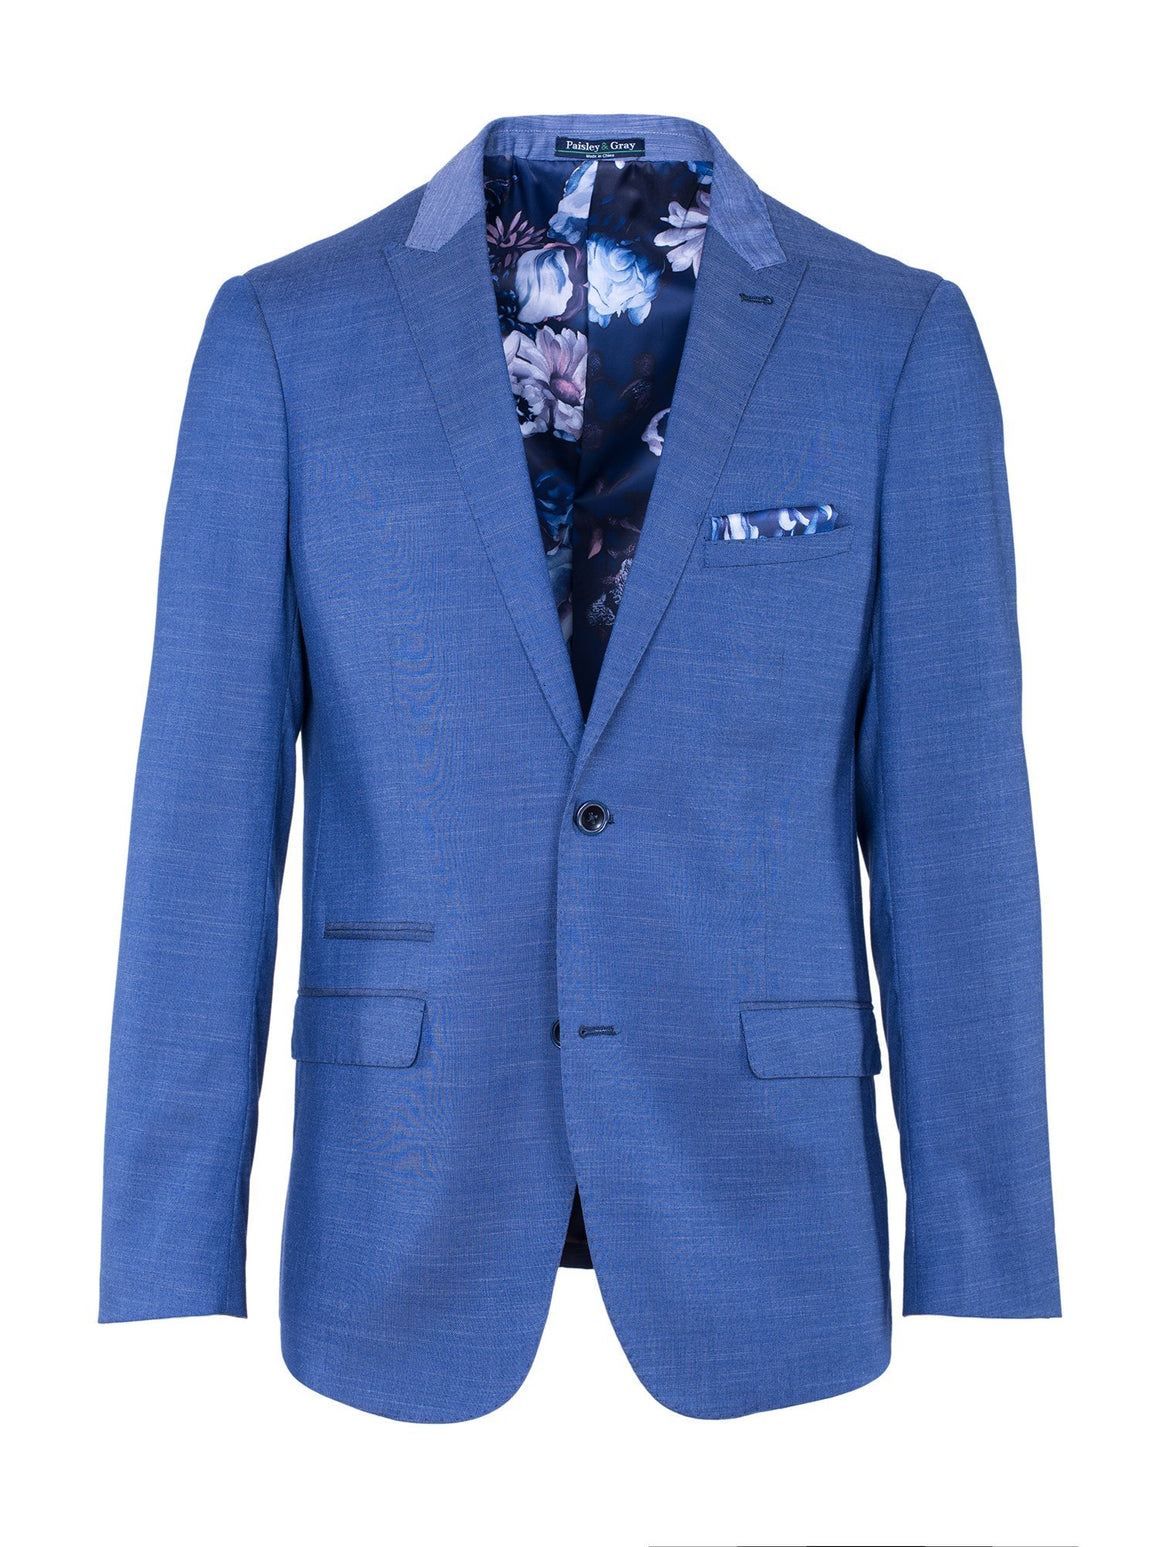 Grosvenor Peak Tuxedo Jacket - 2 Tone Chambray